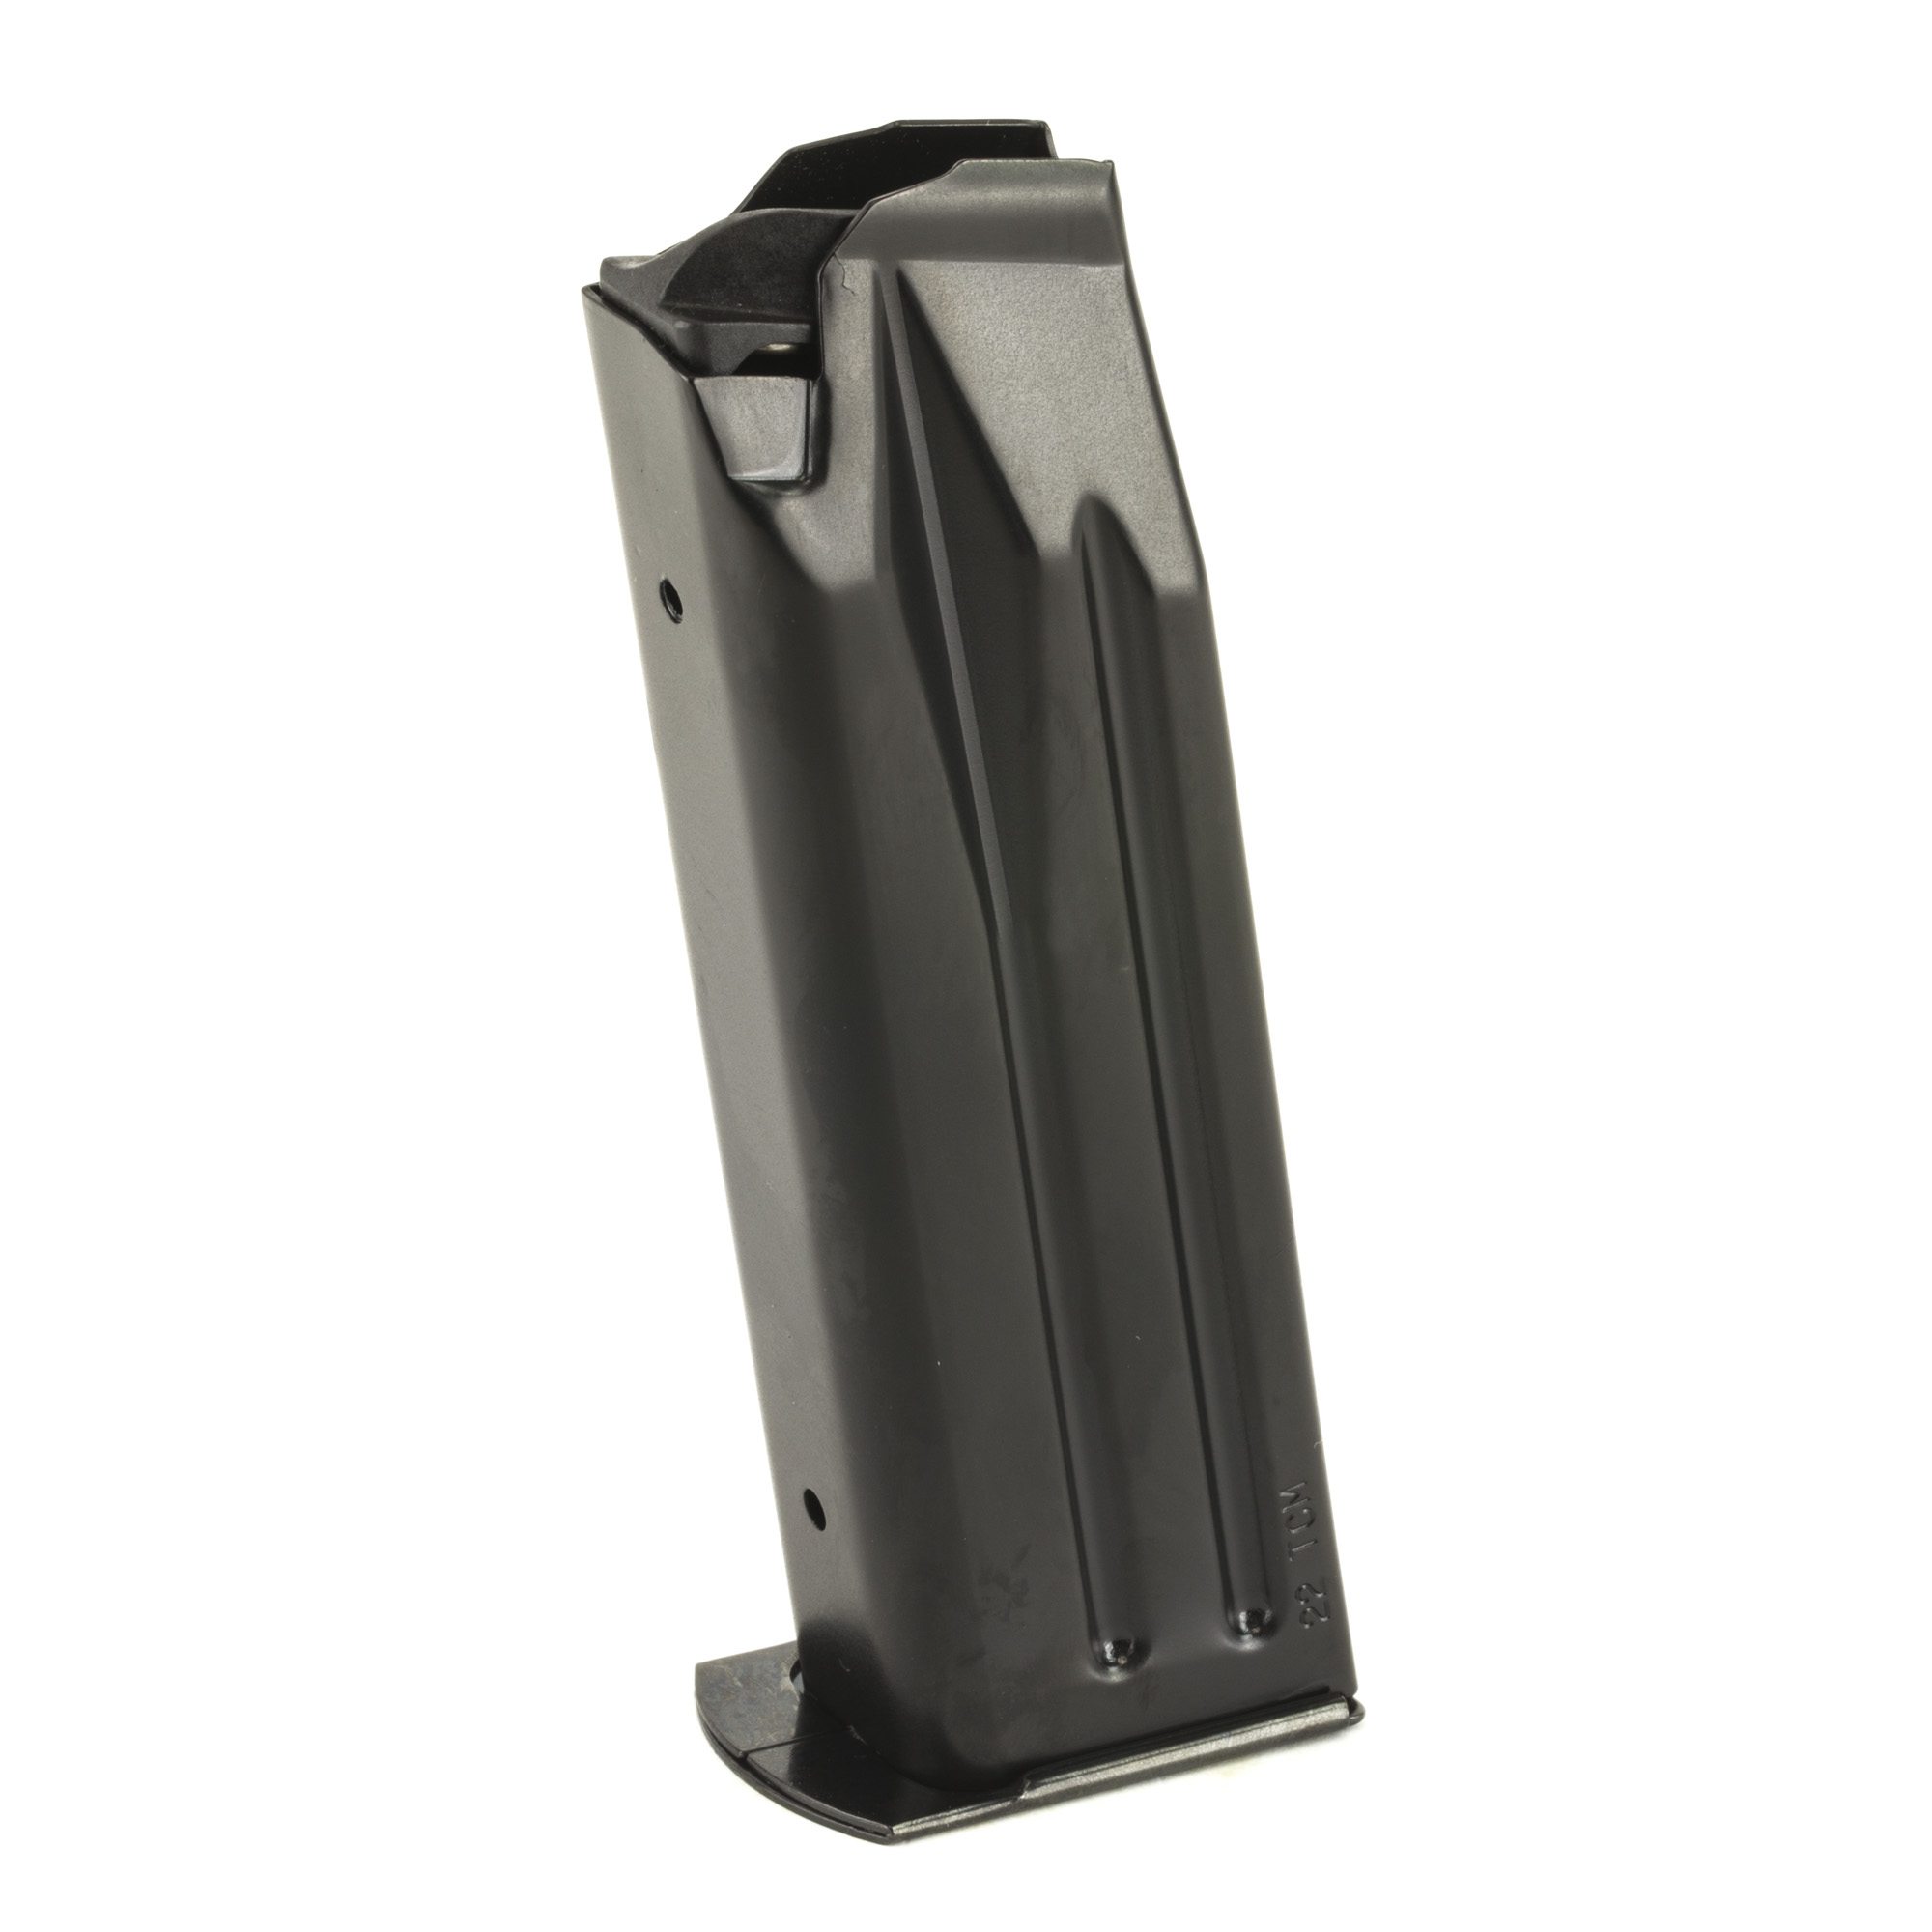 "The Rock Island Armory A-2 High Cap Magazine is a standard factory replacement magazine. This magazine is for either Full Size or Mid Size A-2 models chambered in 22TCM and holds 17 rounds of ammunition. It is made of steel and is made to Armscor/Rock Island Armory specifications and tolerances"" using the same manufacturing and materials as the original equipment magazines"" ensuring perfect fit and operation."